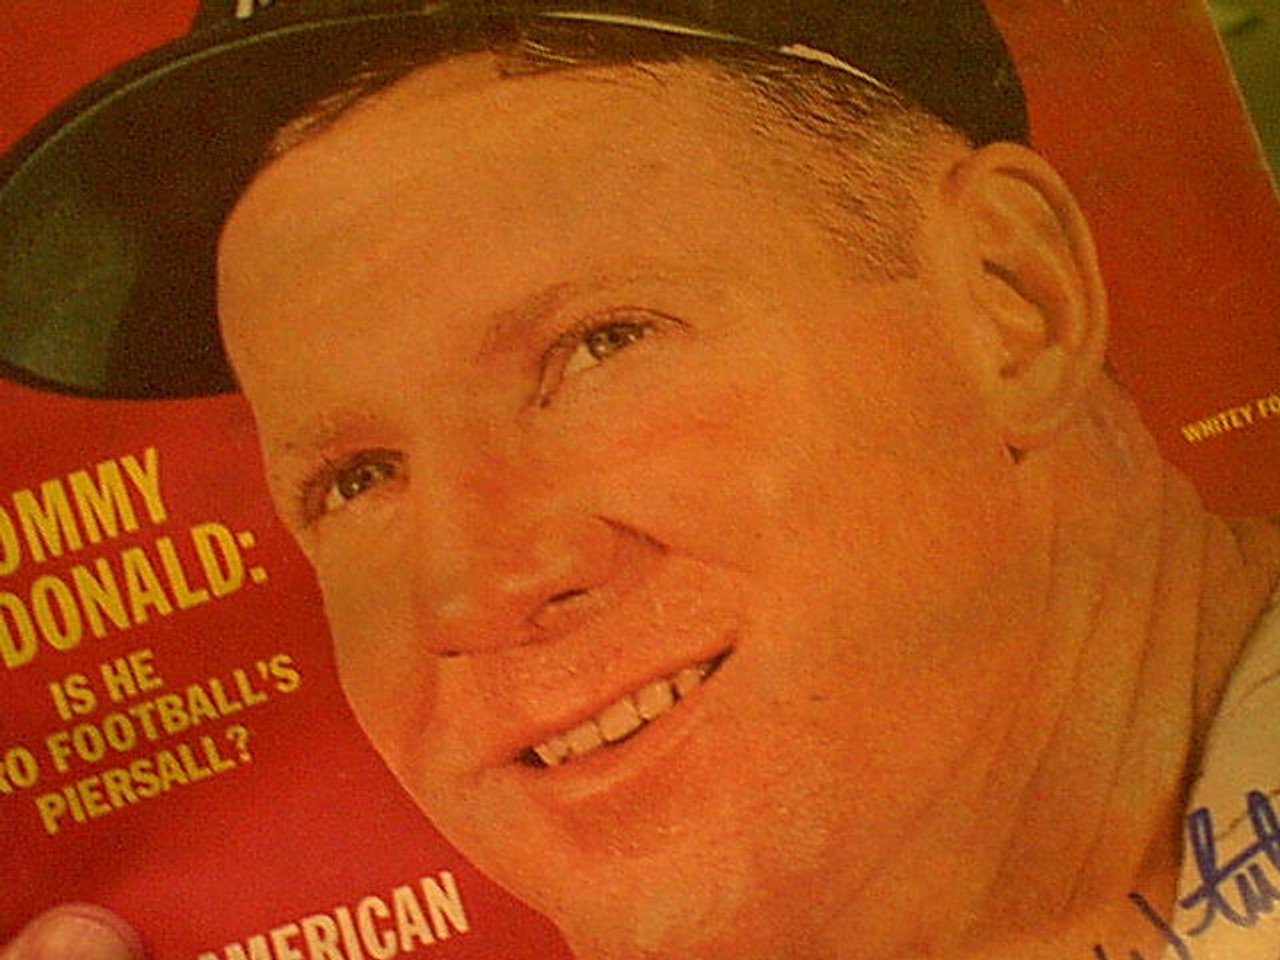 Ford, Whitey Sport Magazine 1963 Signed Autograph Color Cover Photo Baseball